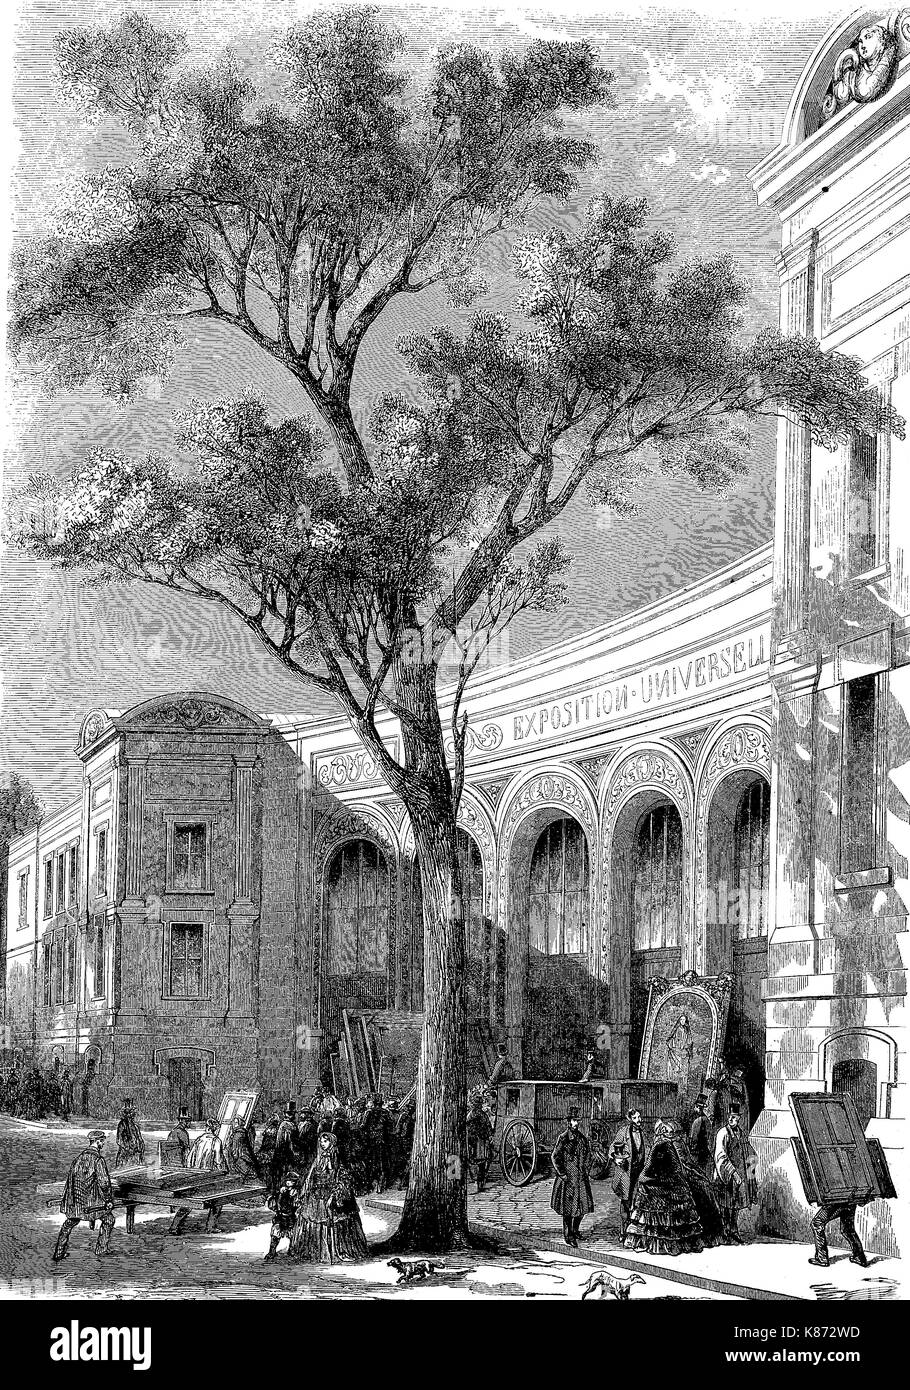 the art exhibition of Paris, France, ca 1855, here the facade of the gallery in Avenue Montaigne, Digital improved reproduction of an original woodprint from the 19th century - Stock Image